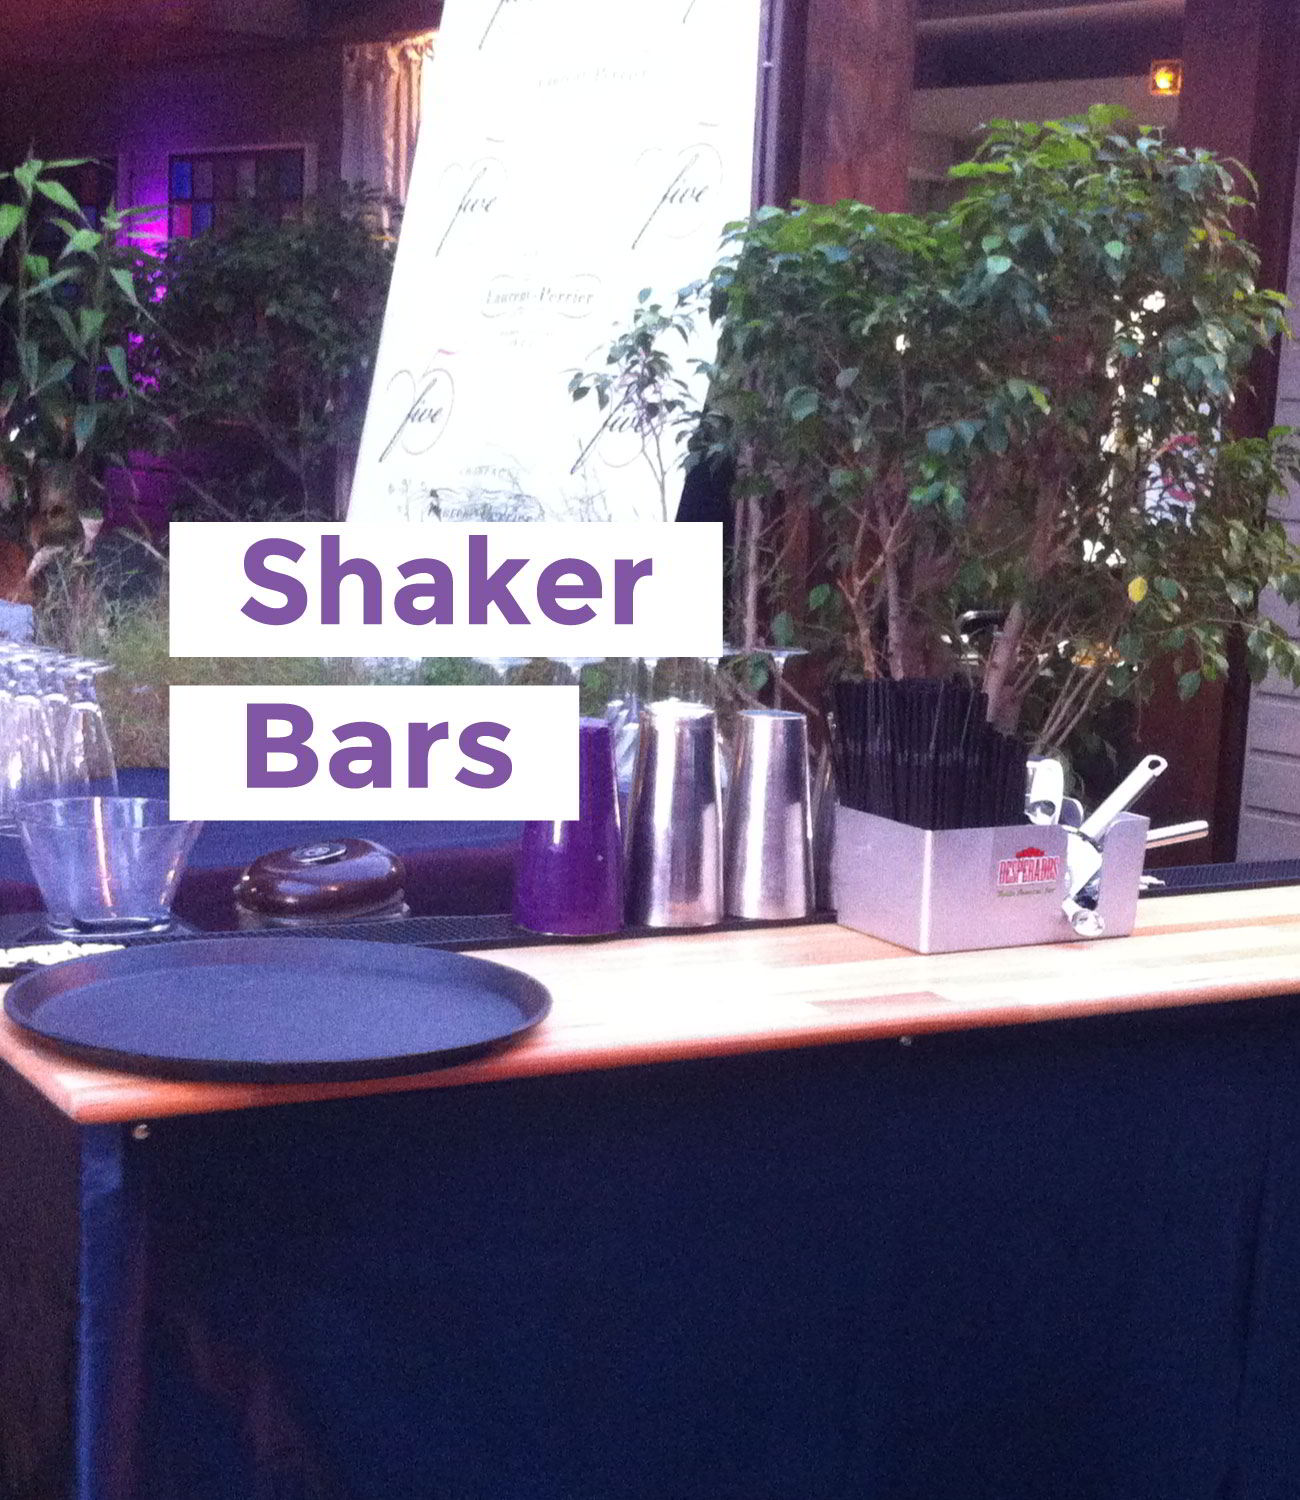 Un des shakers bars